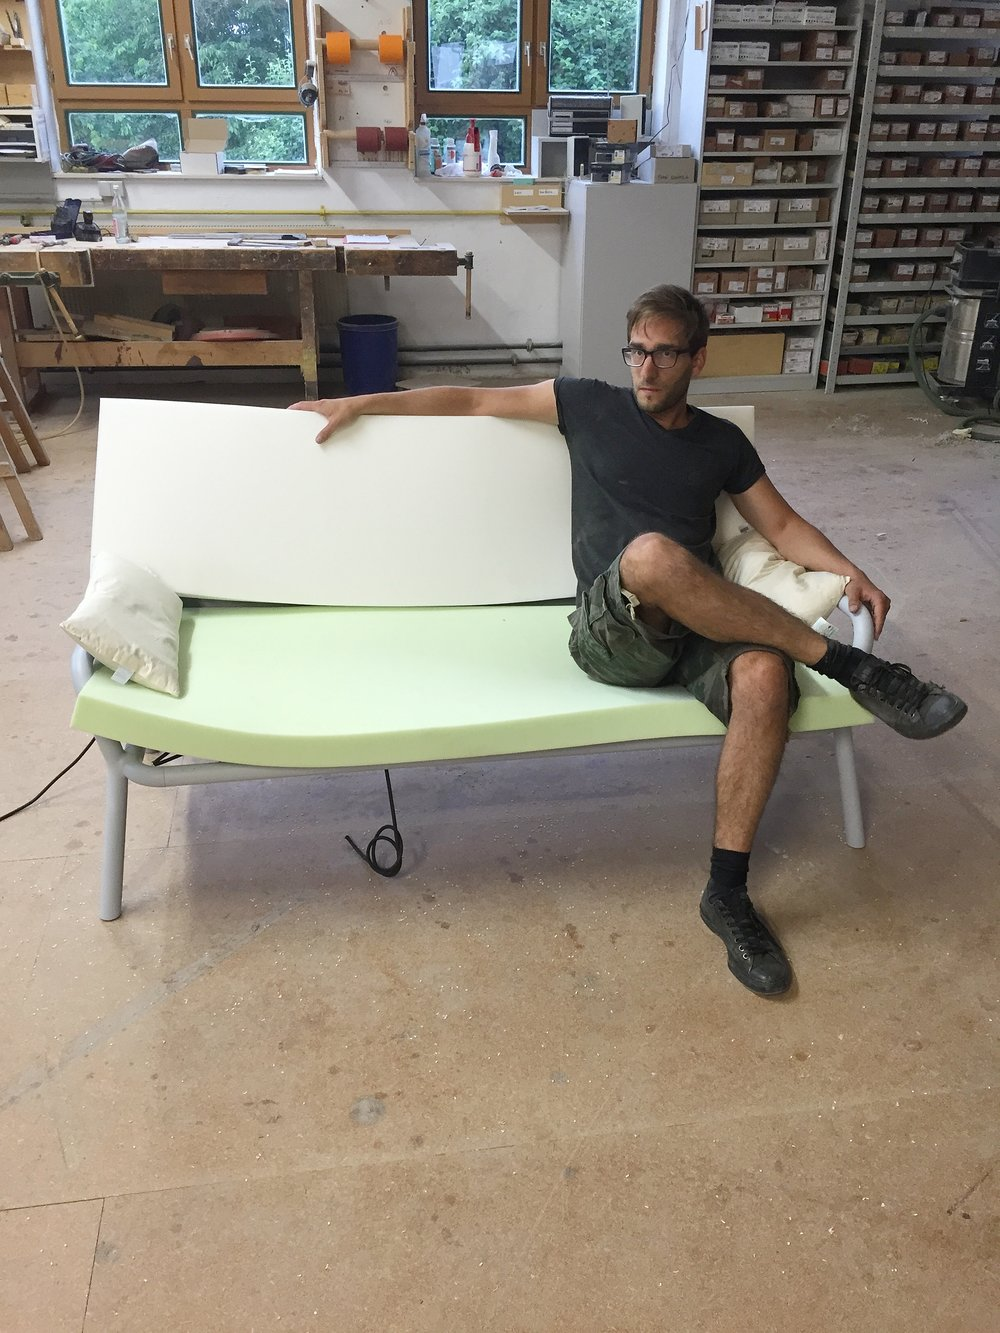 Easy-Sofa-Johannes-Steinbauer-Making-of_12.JPG